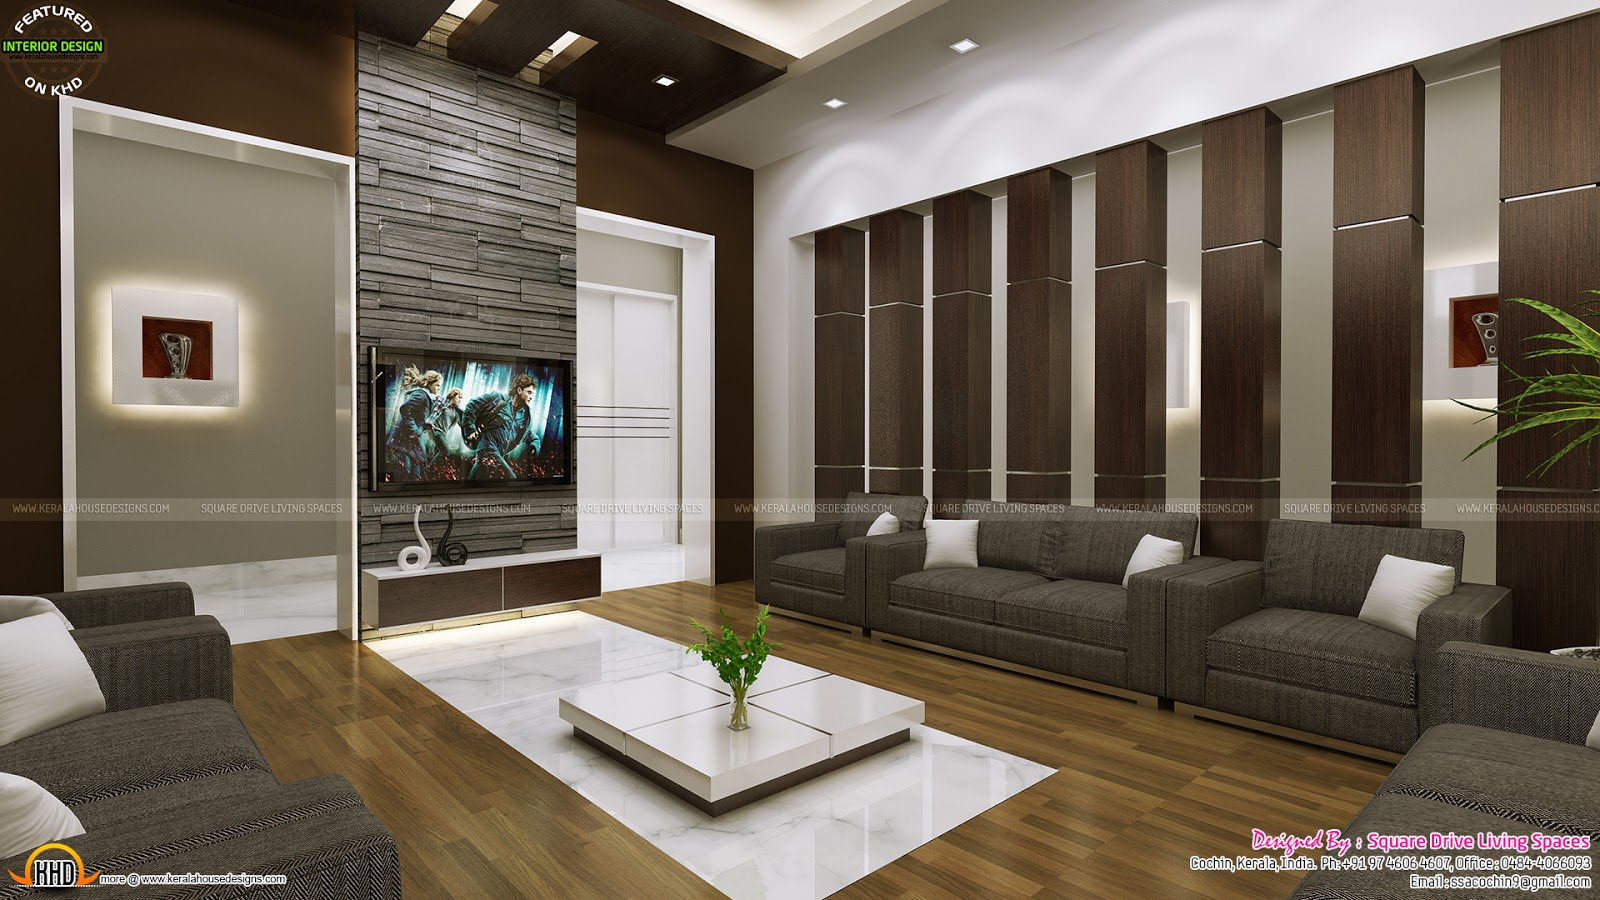 Attractive home interior ideas kerala home design and for Interior designs photos for home